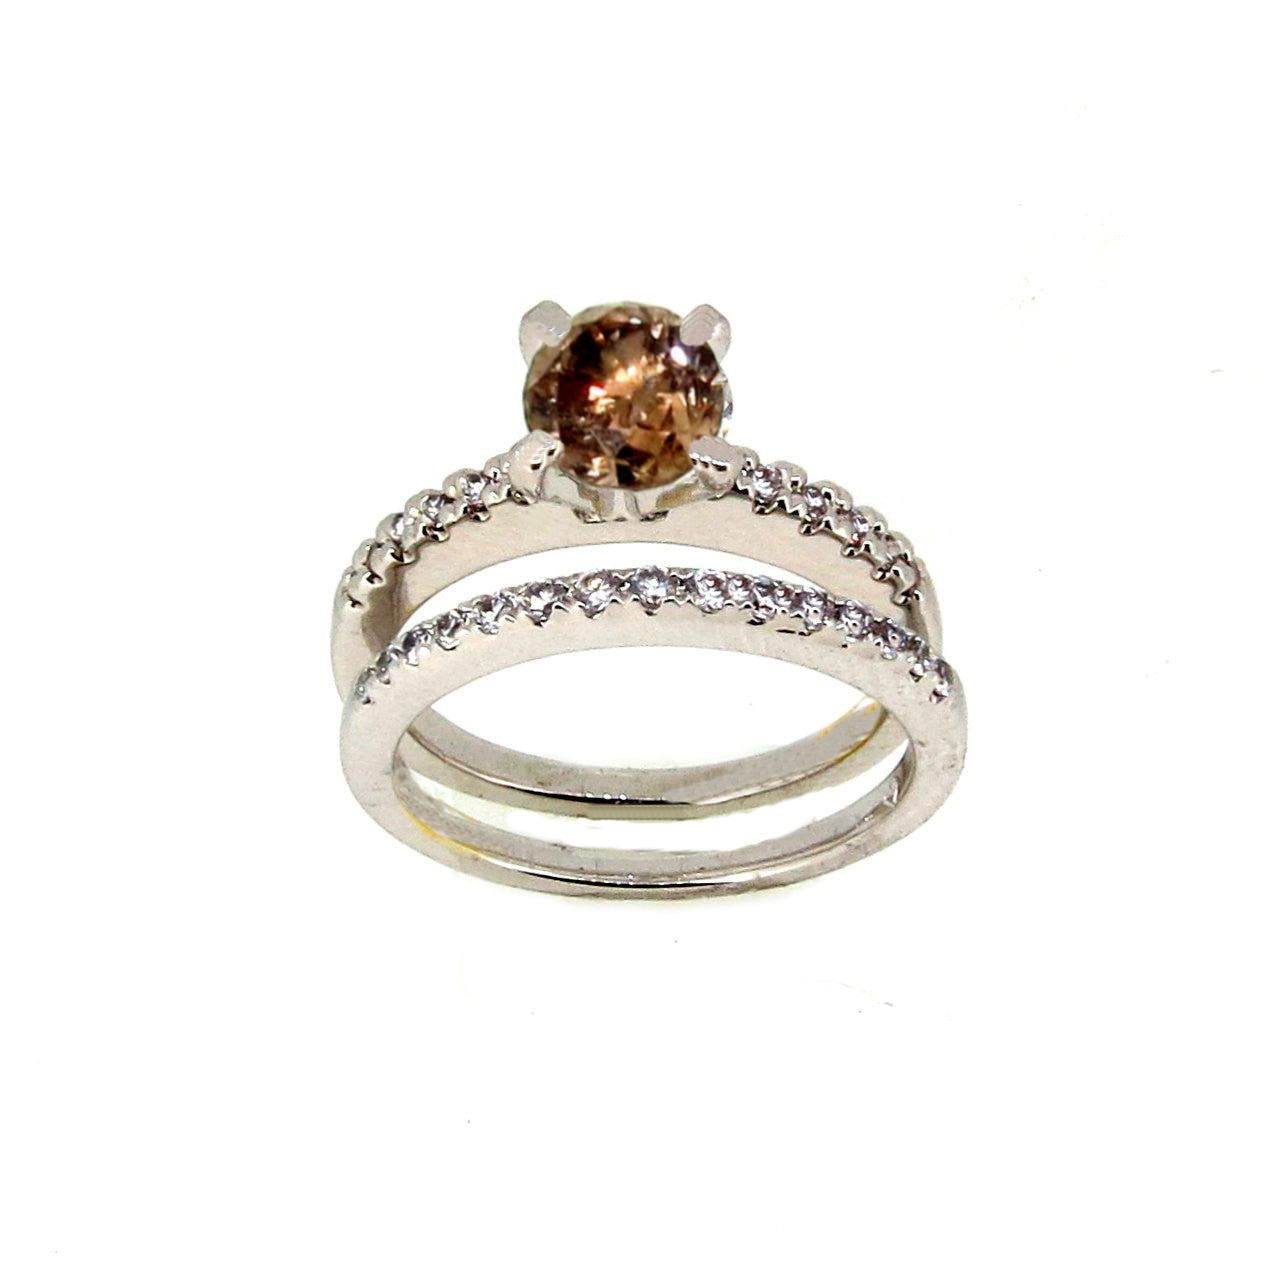 1 Carat Chocolate Brown Diamond Solitaire & White Diamond Accent Engagement Ring and Wedding Band Set, Anniversary Ring Set - BD76340